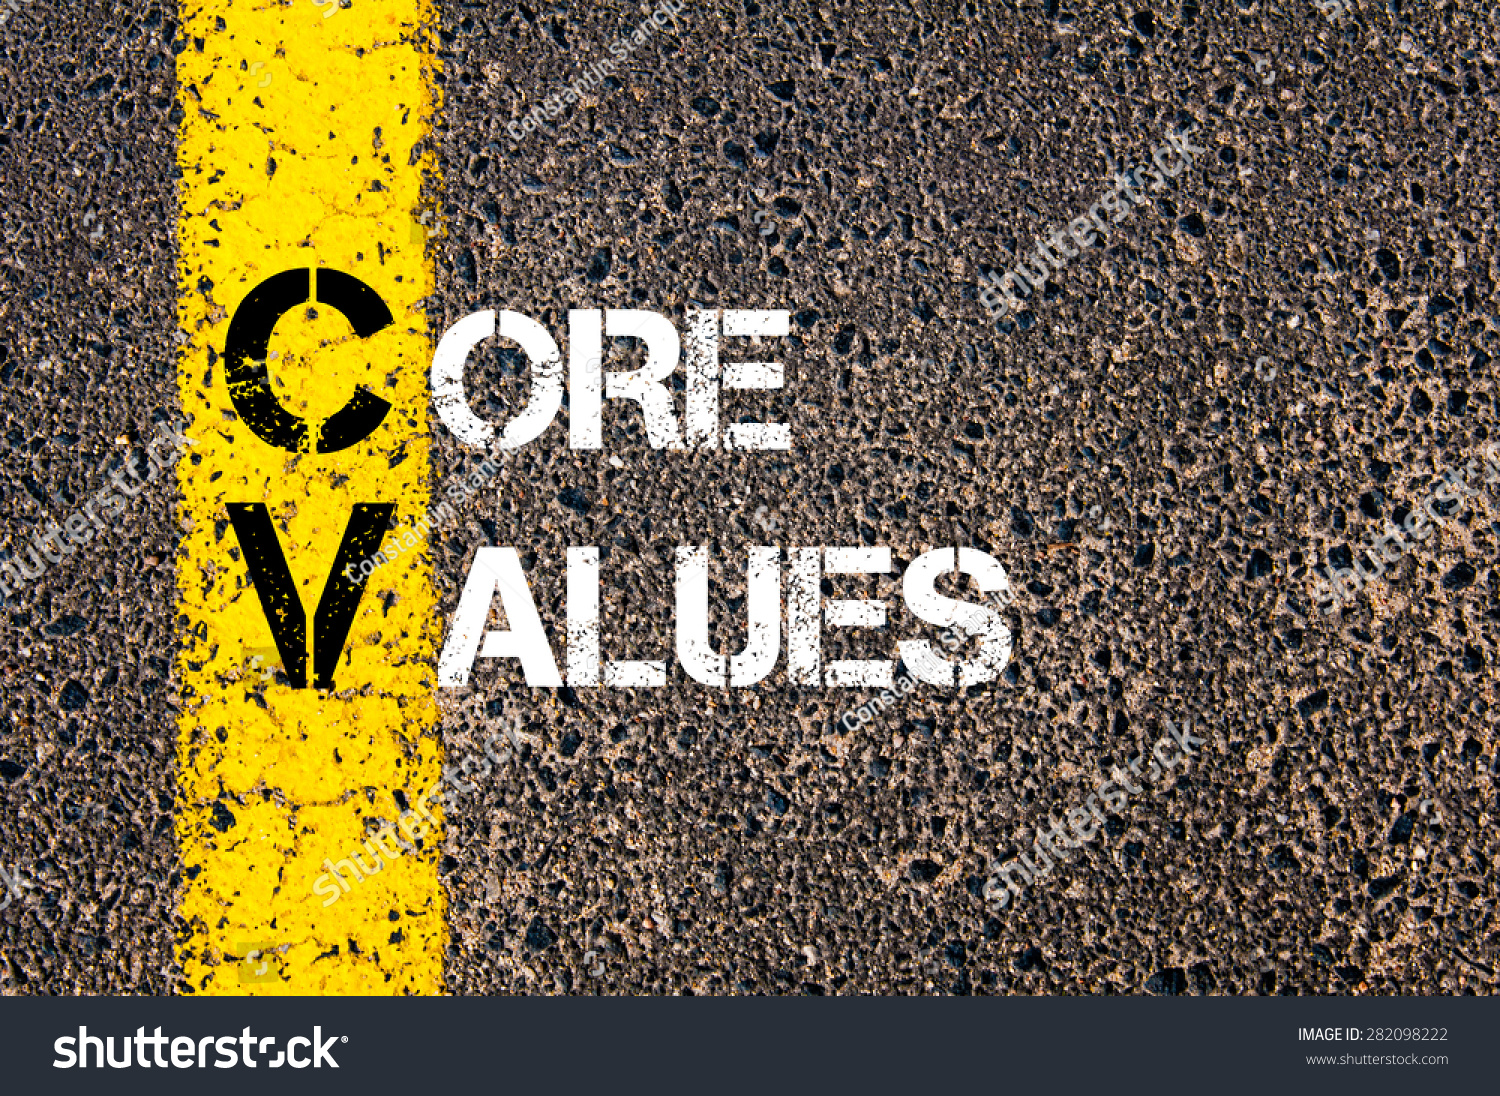 concept image of business acronym cv as core values written over road marking yellow paint line